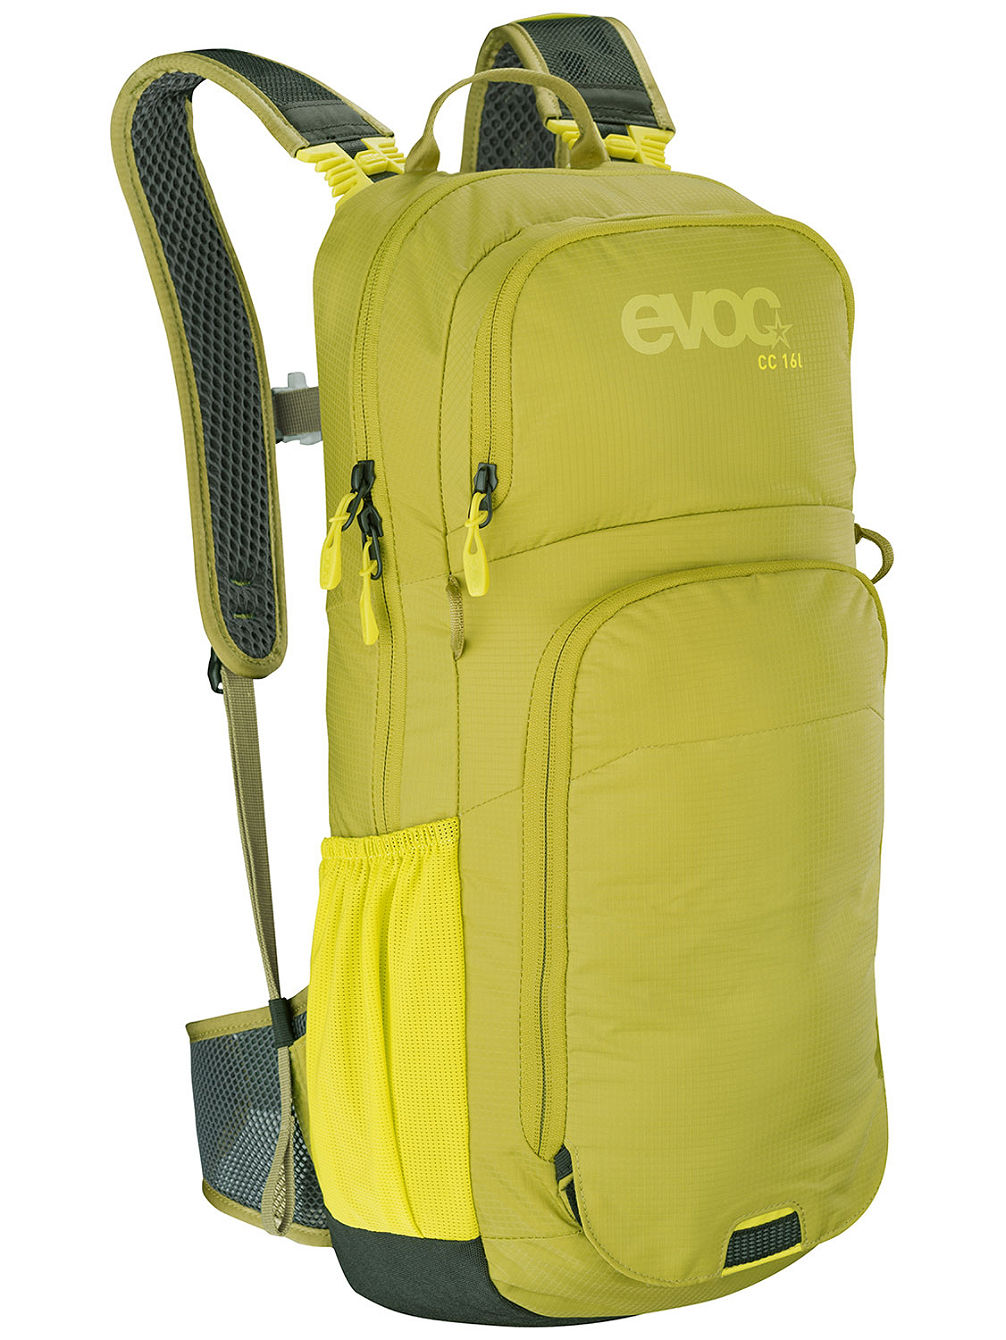 3a68a424584c0 Buy Evoc Cc 16L Backpack online at Blue Tomato